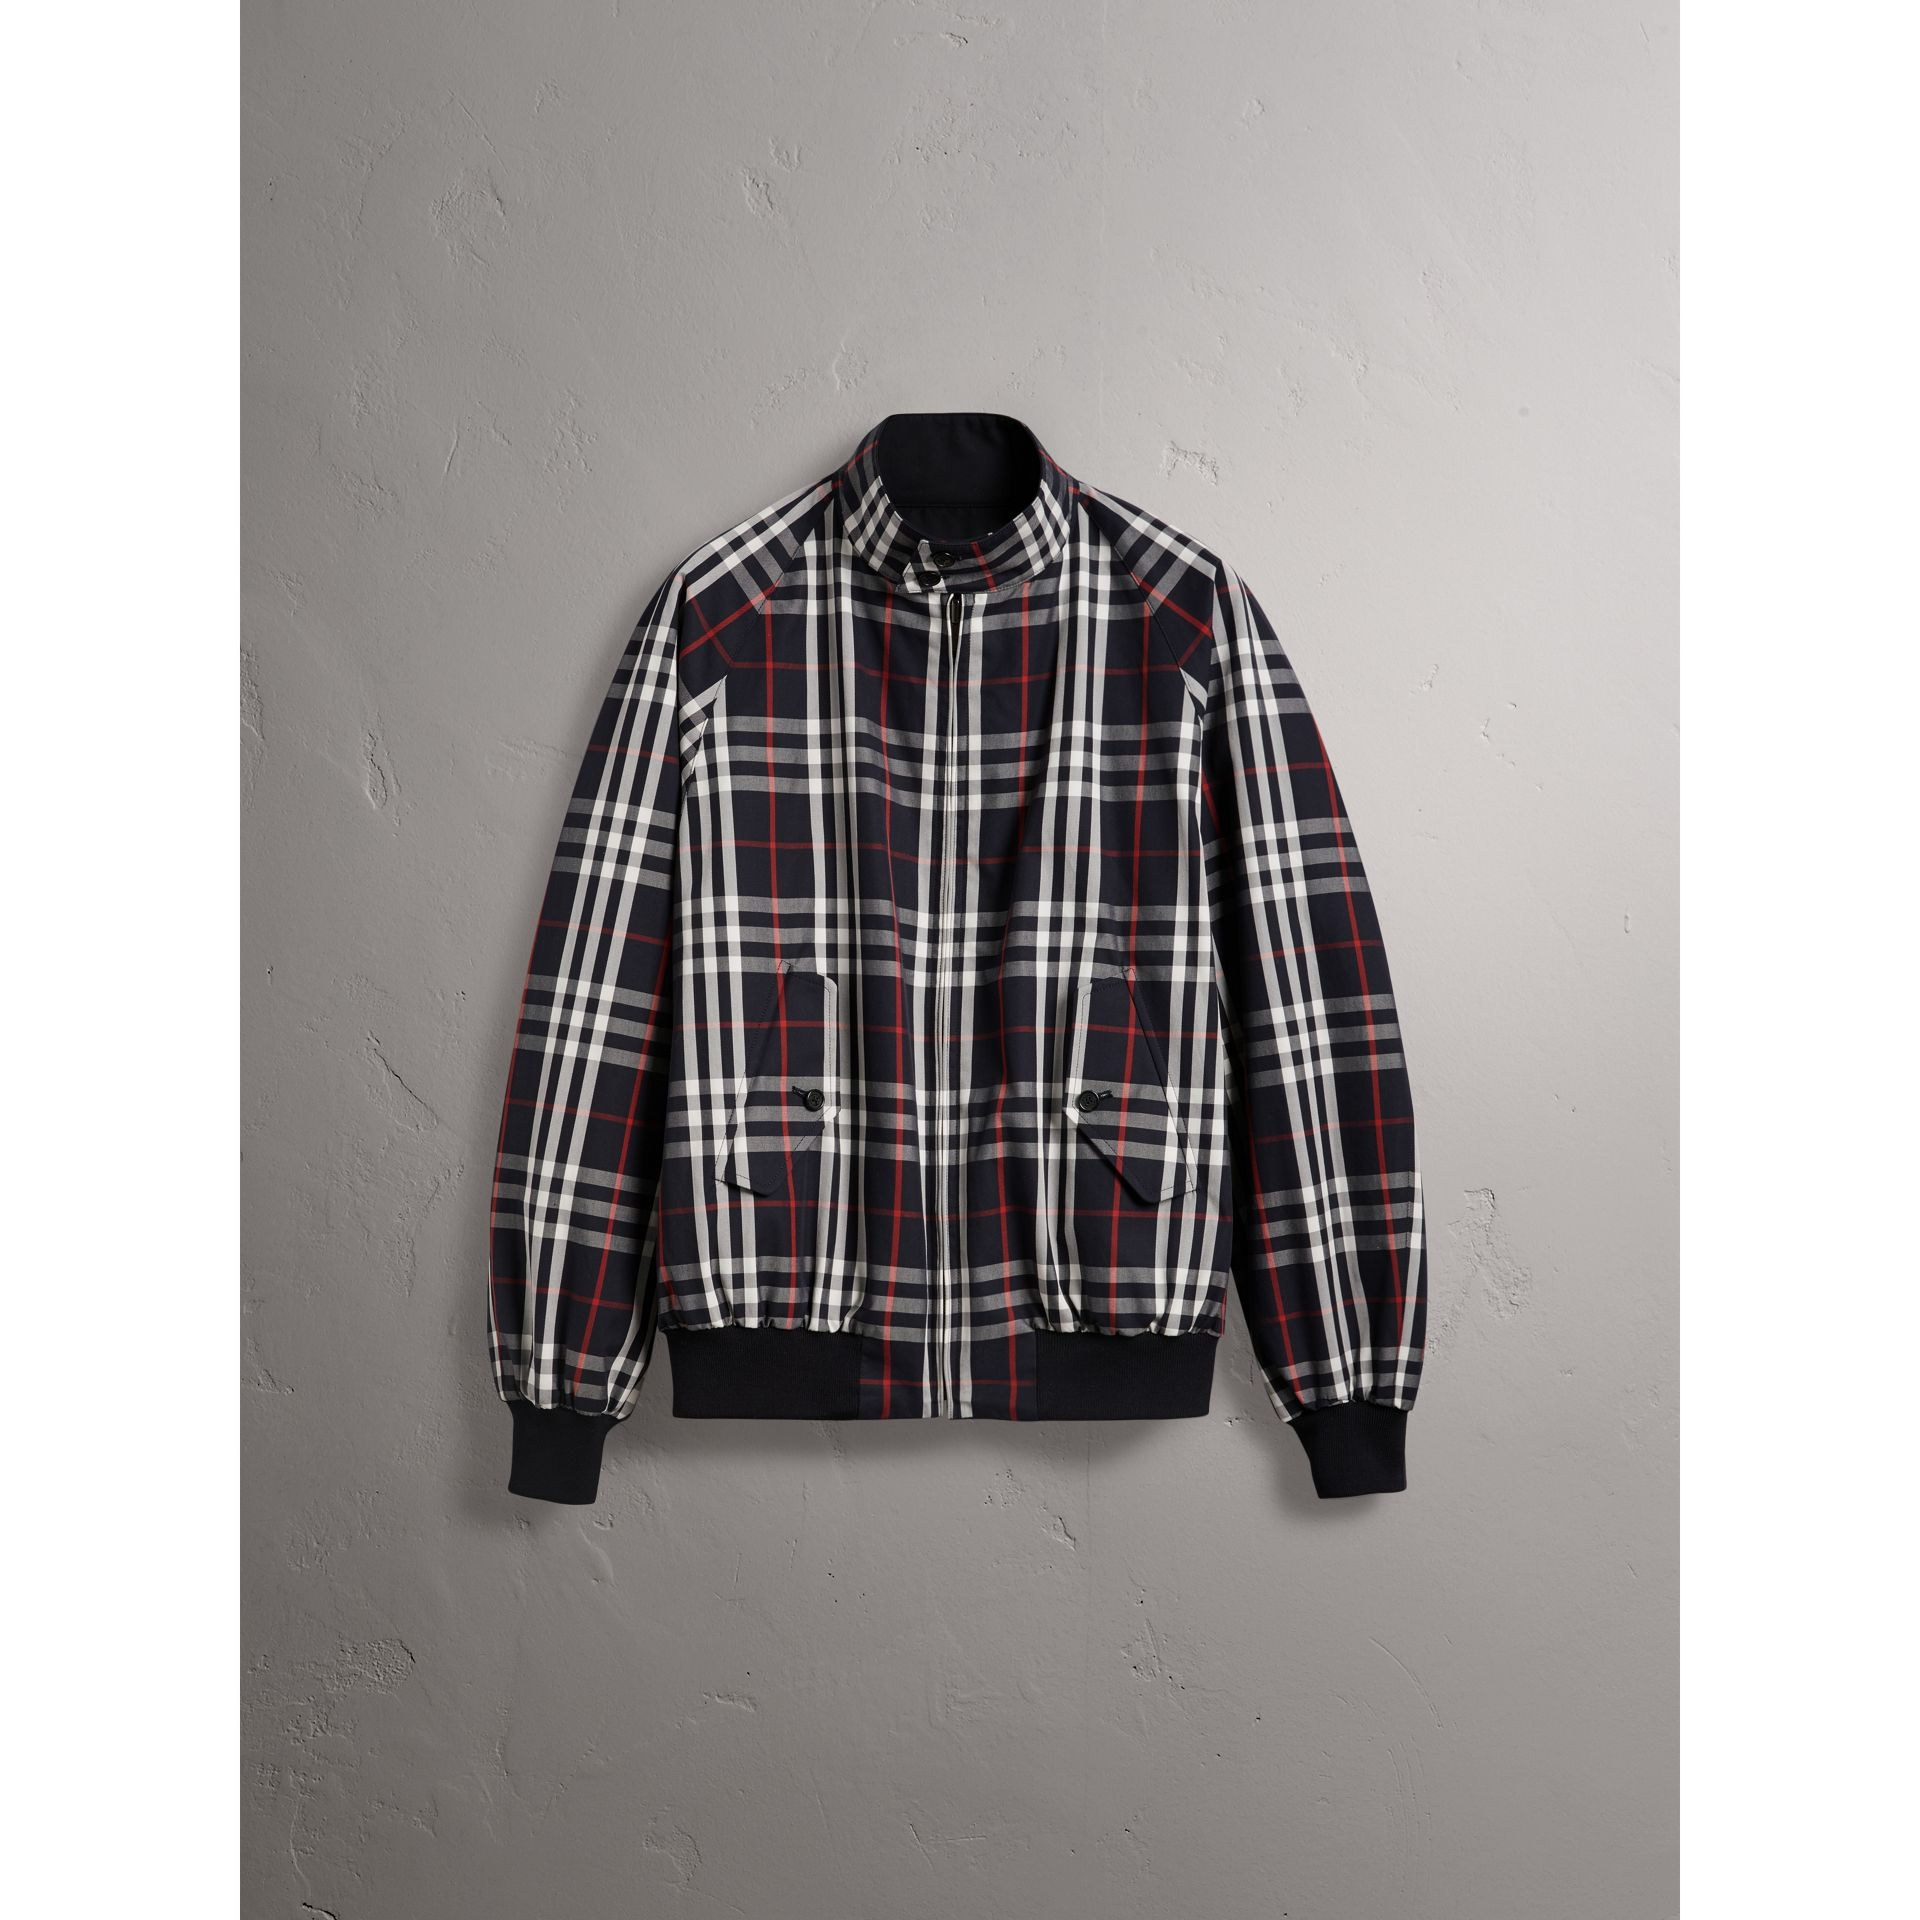 Veste Harrington réversible Gosha x Burberry (Marine) | Burberry - photo de la galerie 8